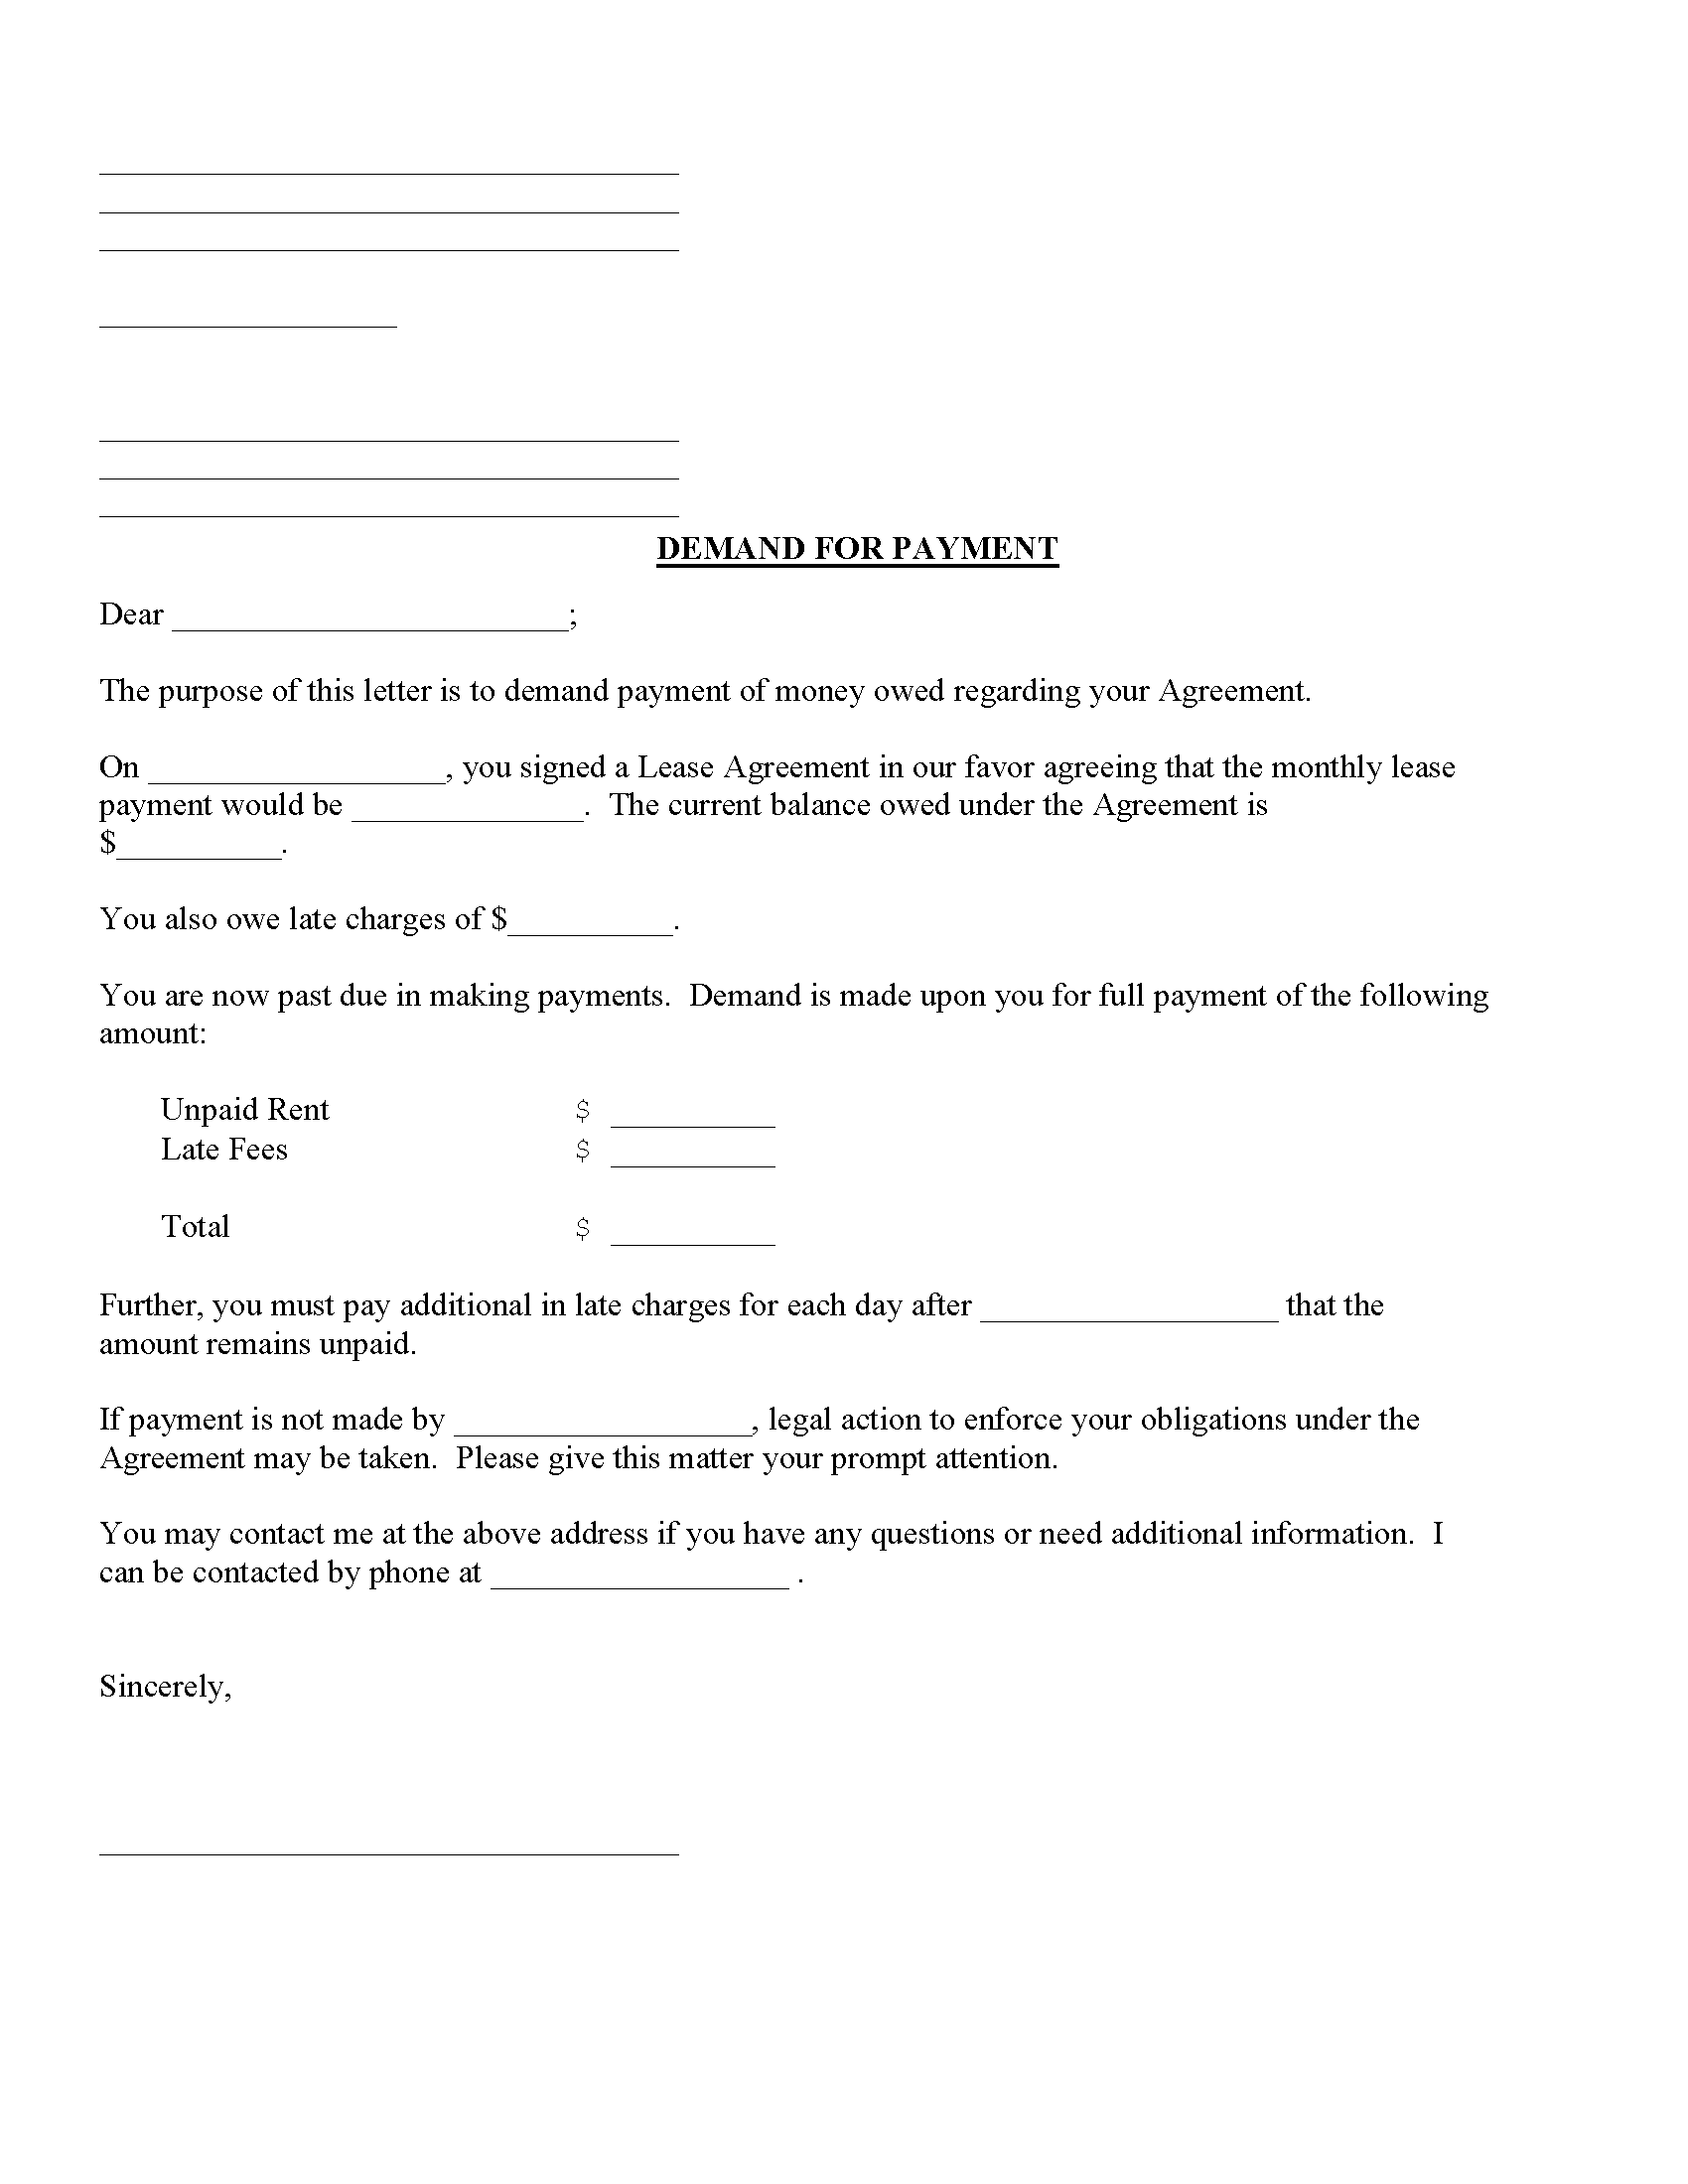 Demand For Lease Payment Fillable PDF Form